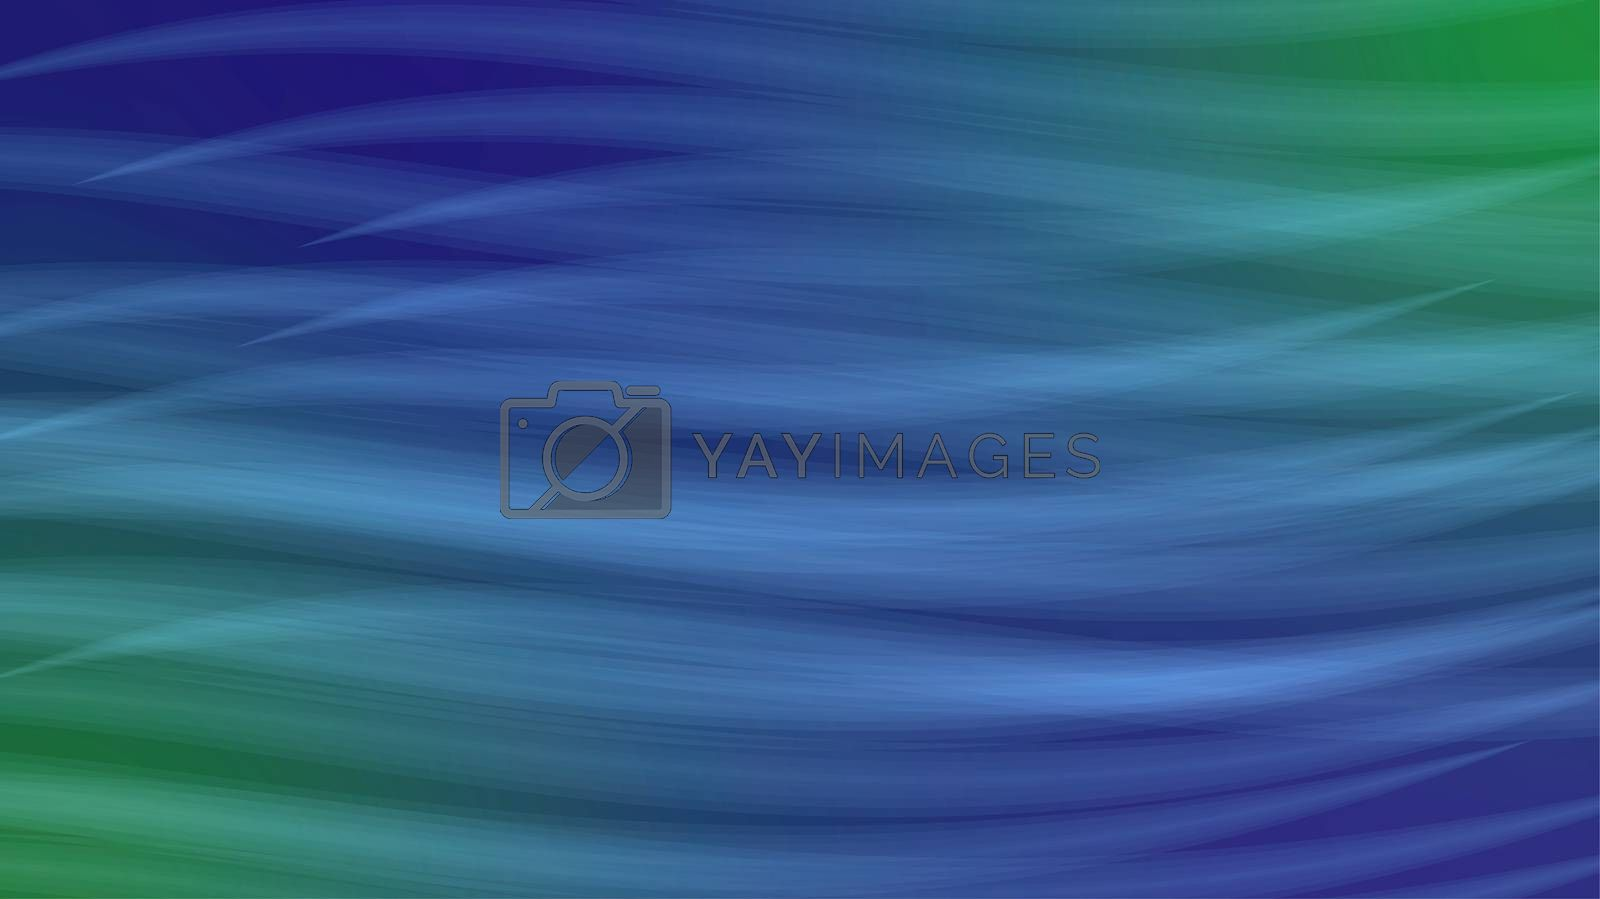 Abstract Background Wave effect soft interlocking colors